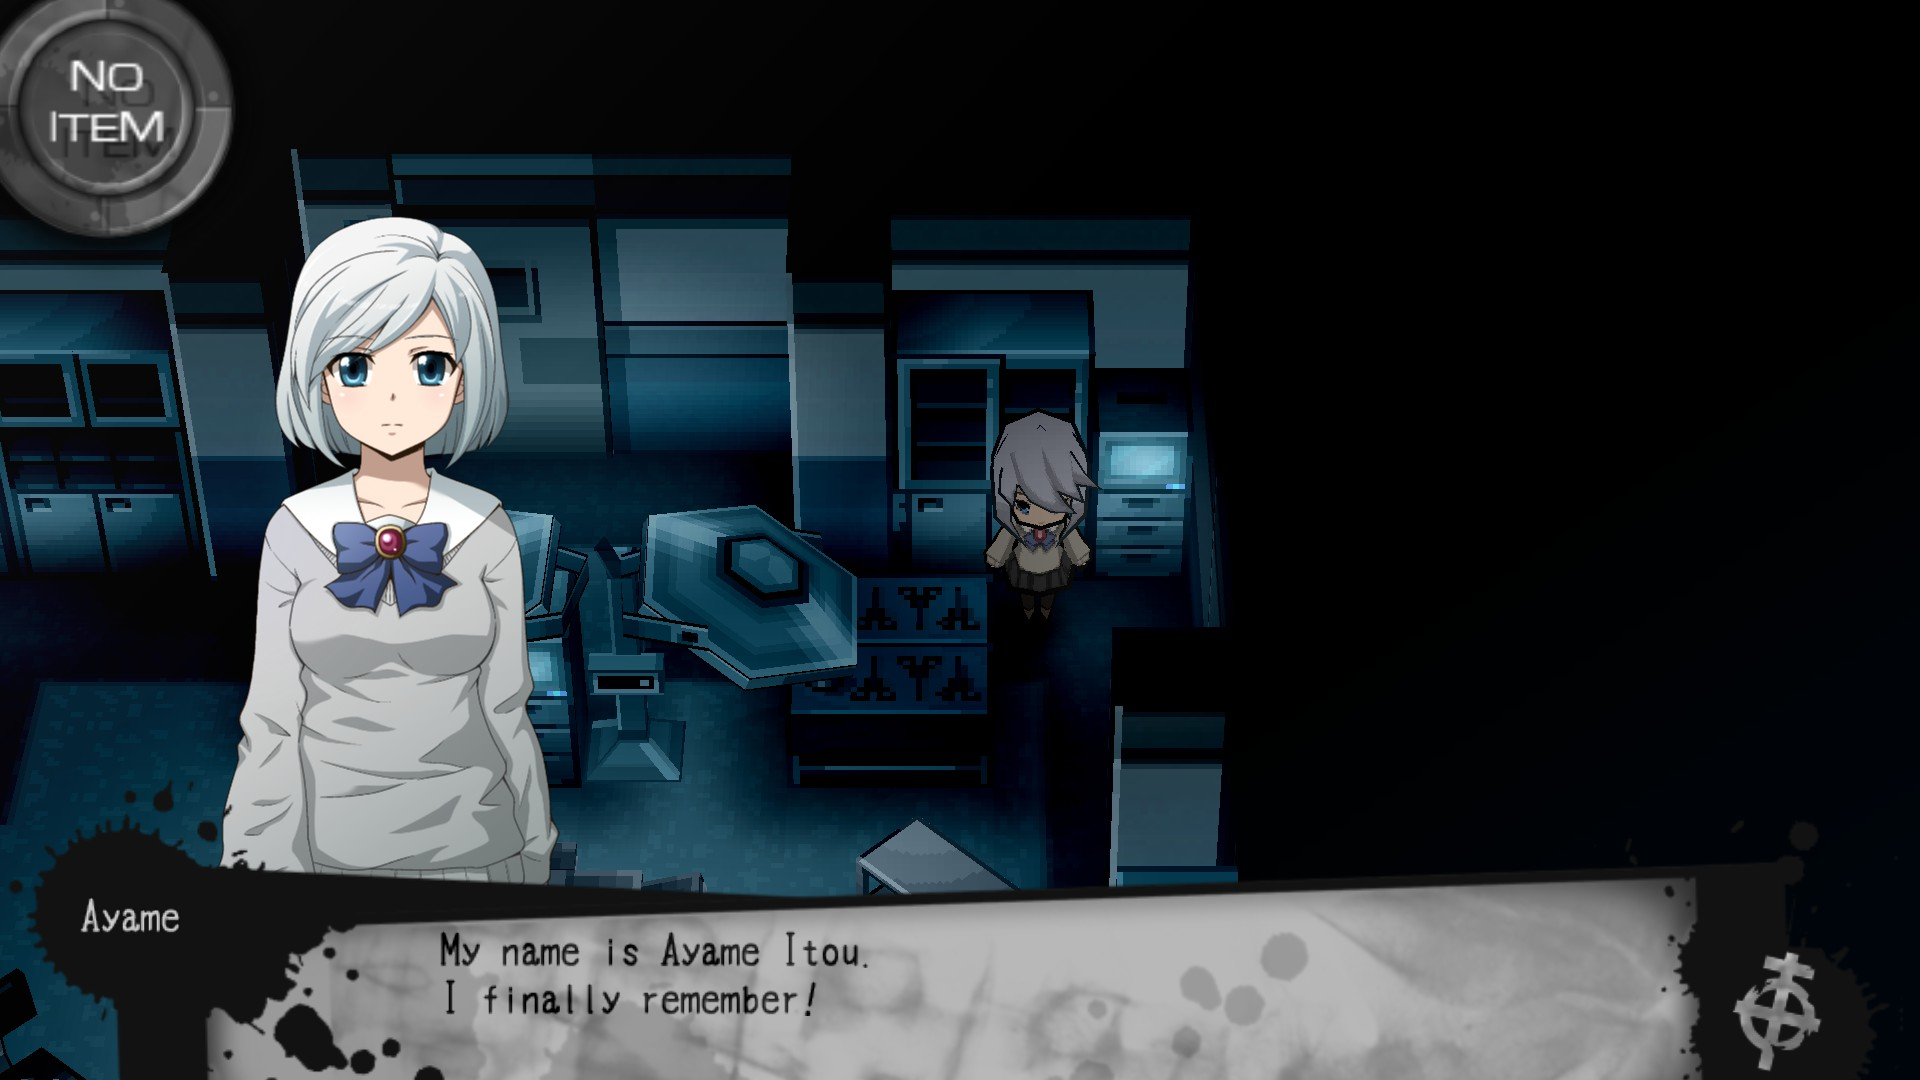 Corpse Party 2: Dead Patient (Ch.1)